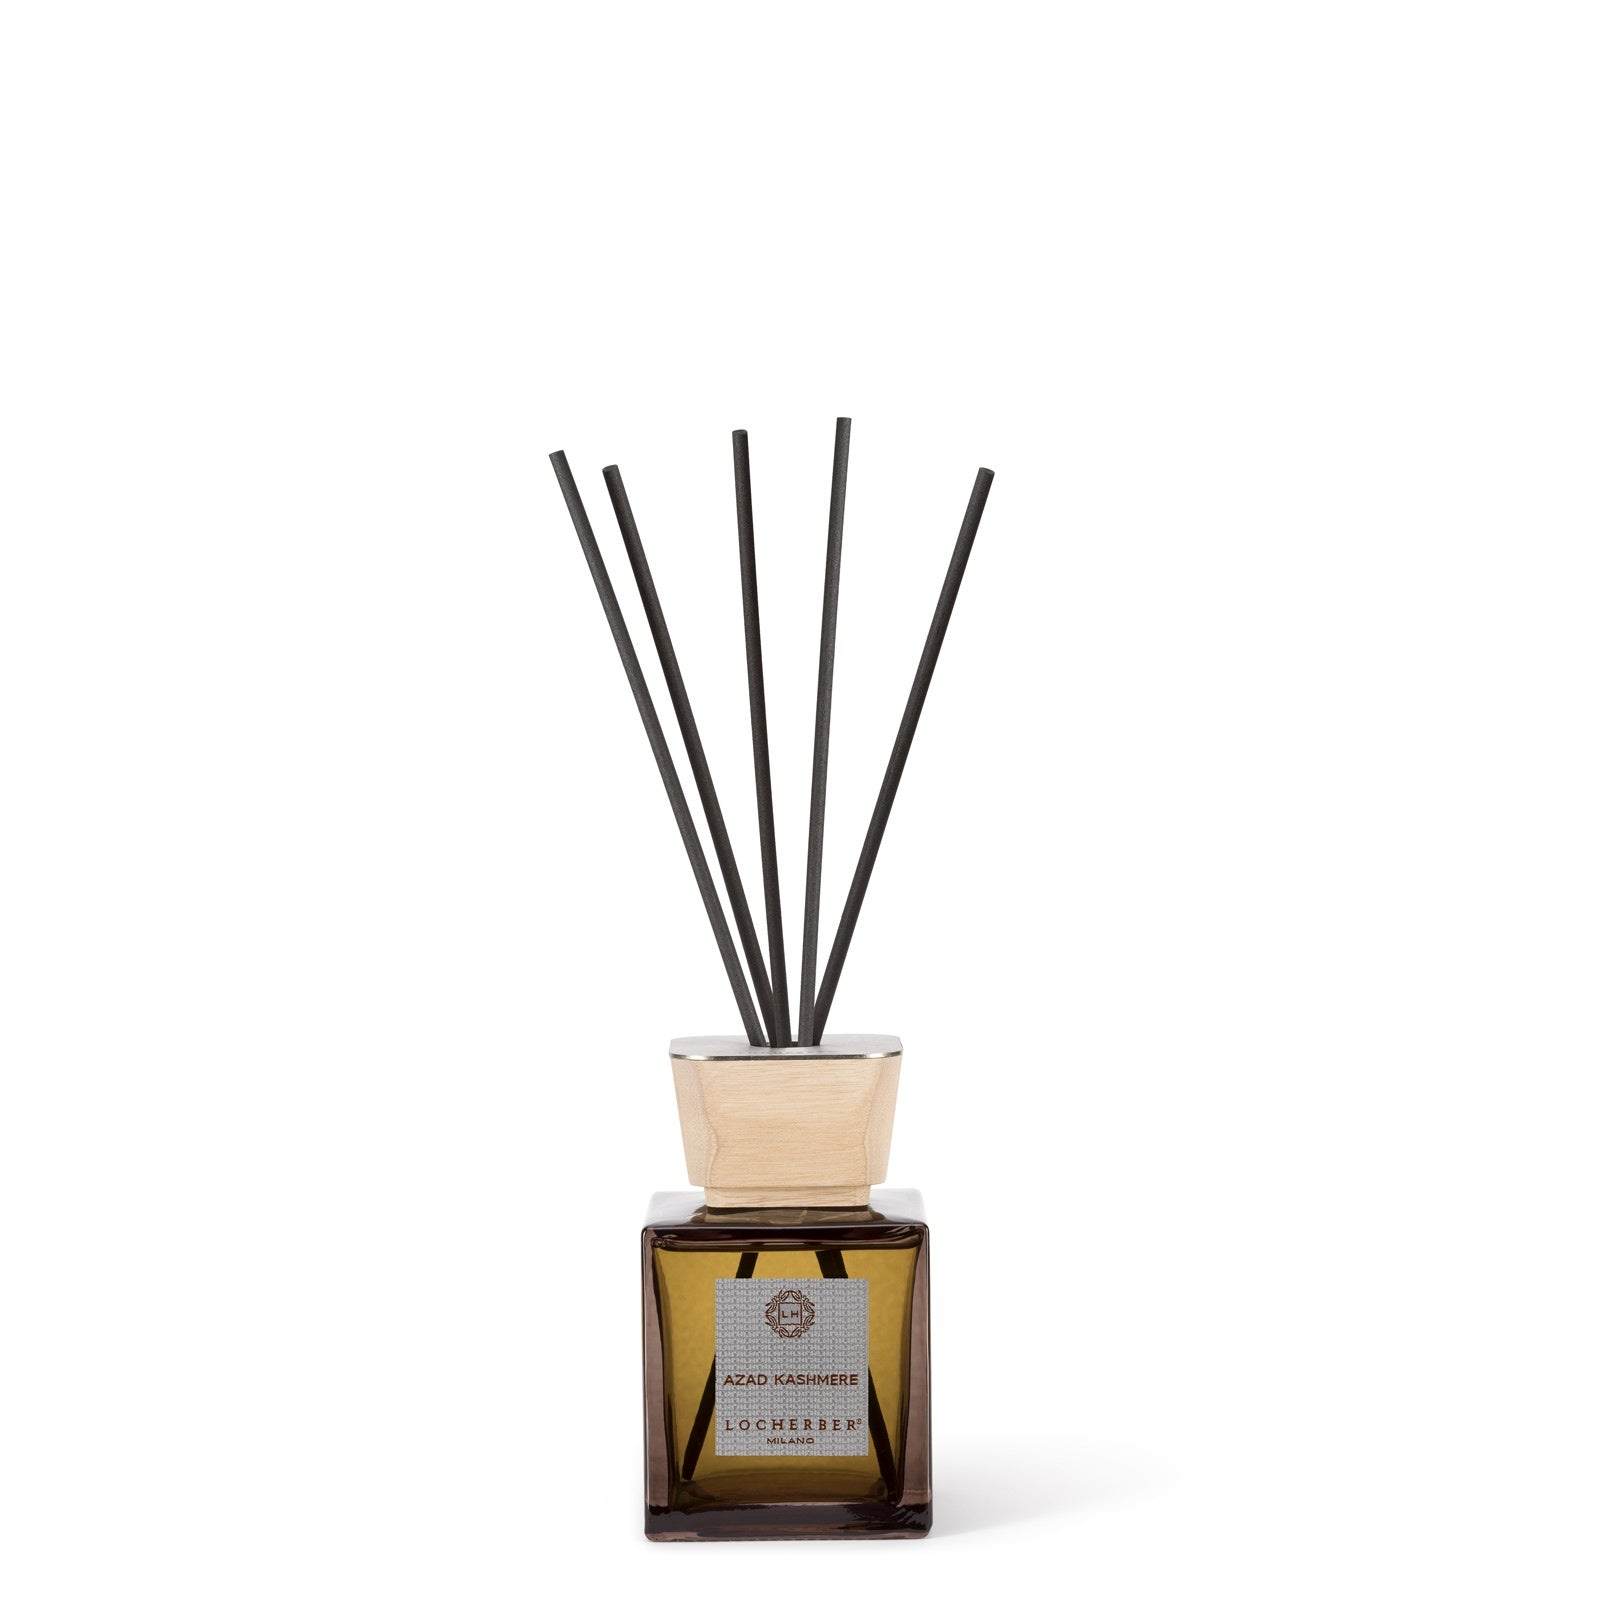 AZAD KASHMERE  / Diffuser 250 ml